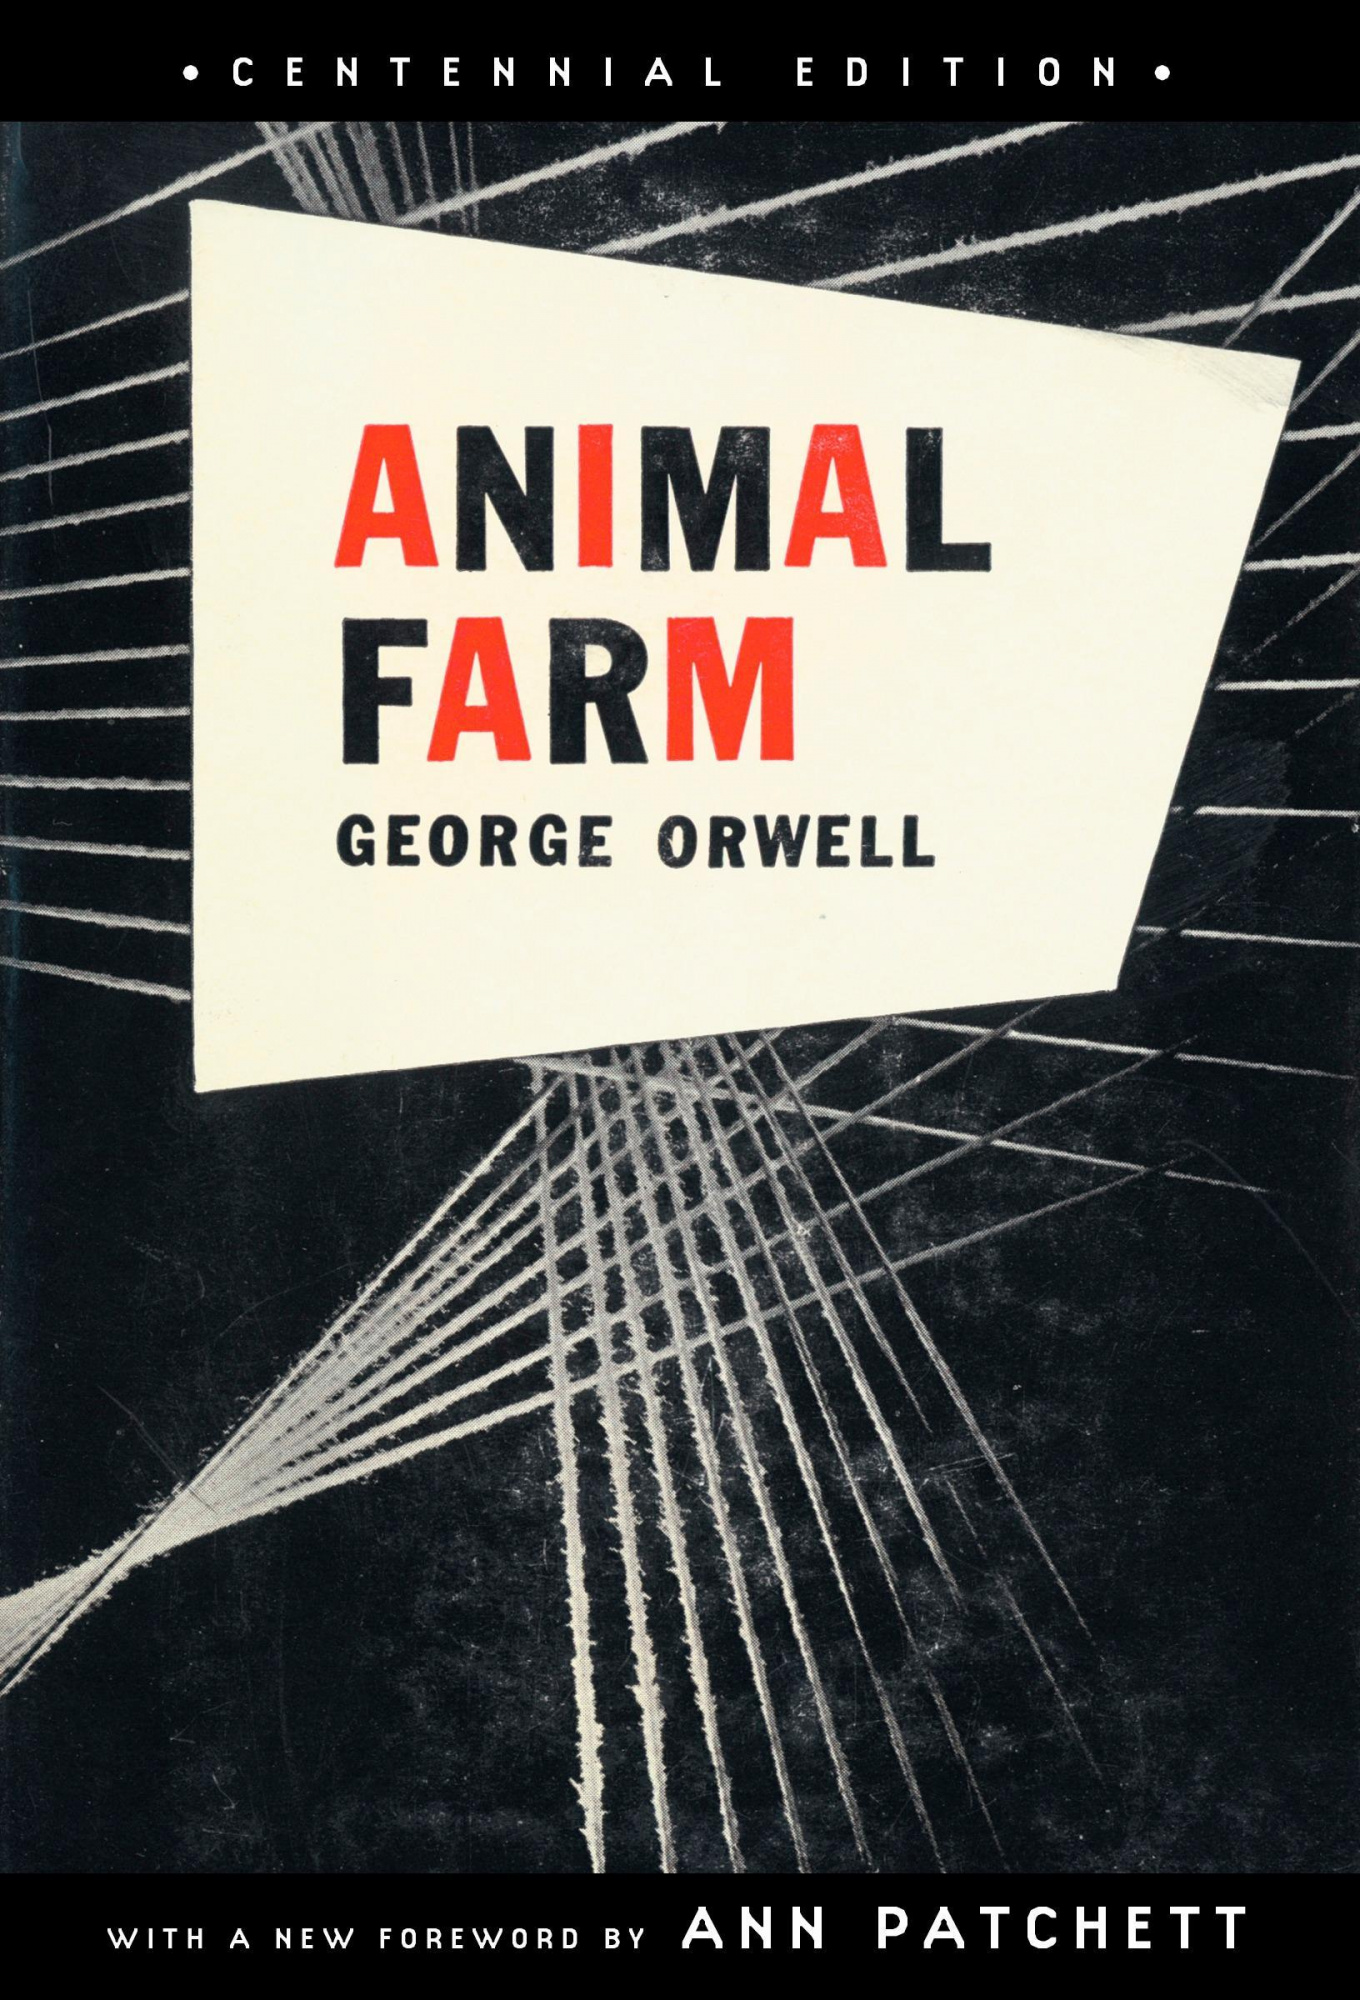 the bolshevik revolution in russia in animal farm a novel by george orwell Books shelved as russian-revolution: doctor zhivago by boris pasternak, ten days that shook the world by john reed, a people's tragedy: the russian revol.